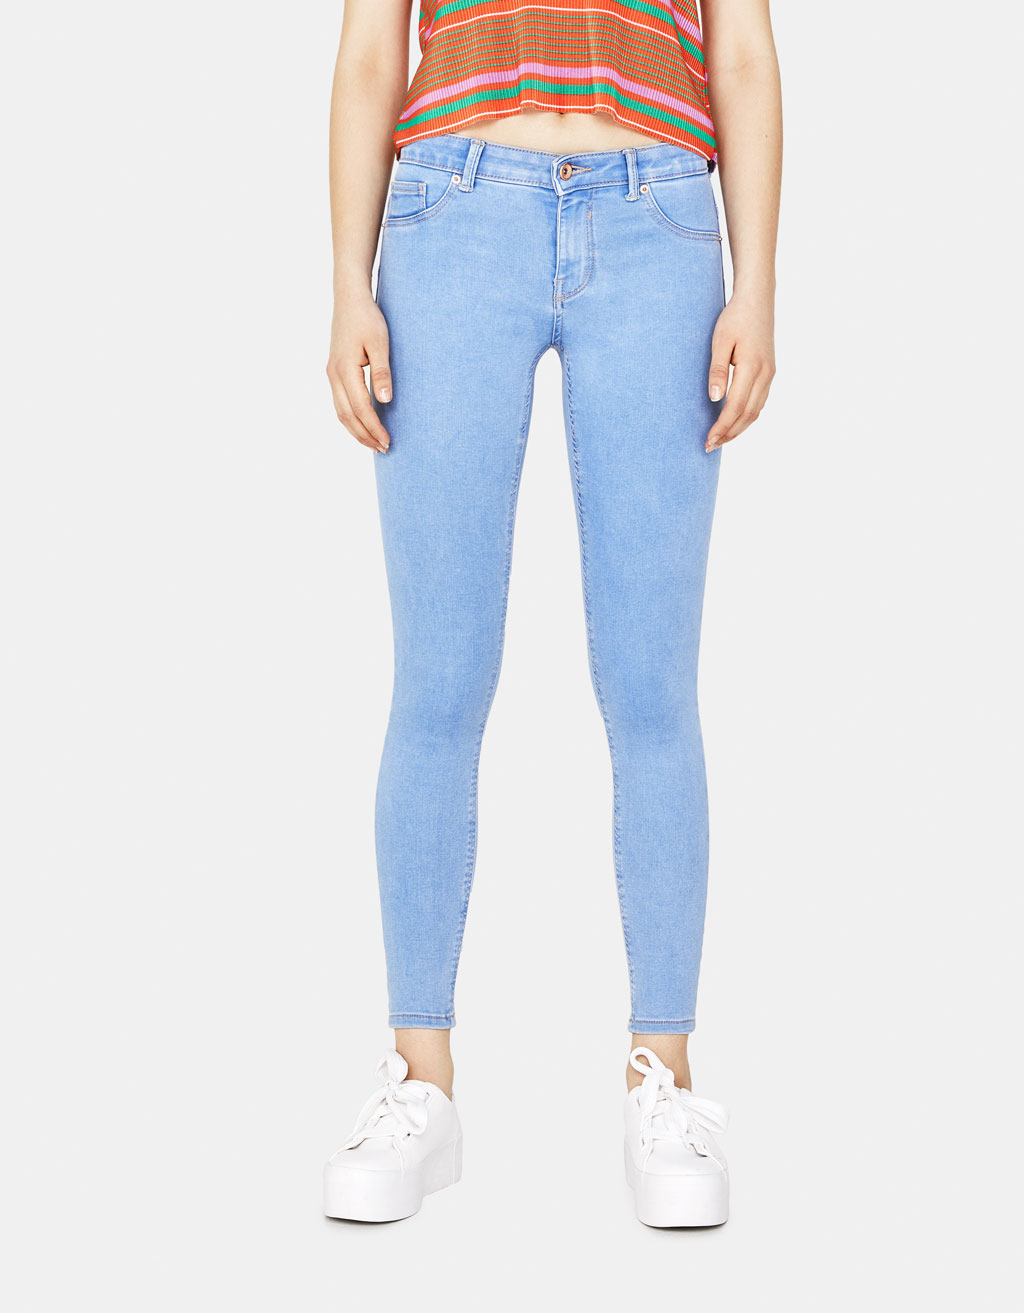 Low-rise push-up stretch jeans